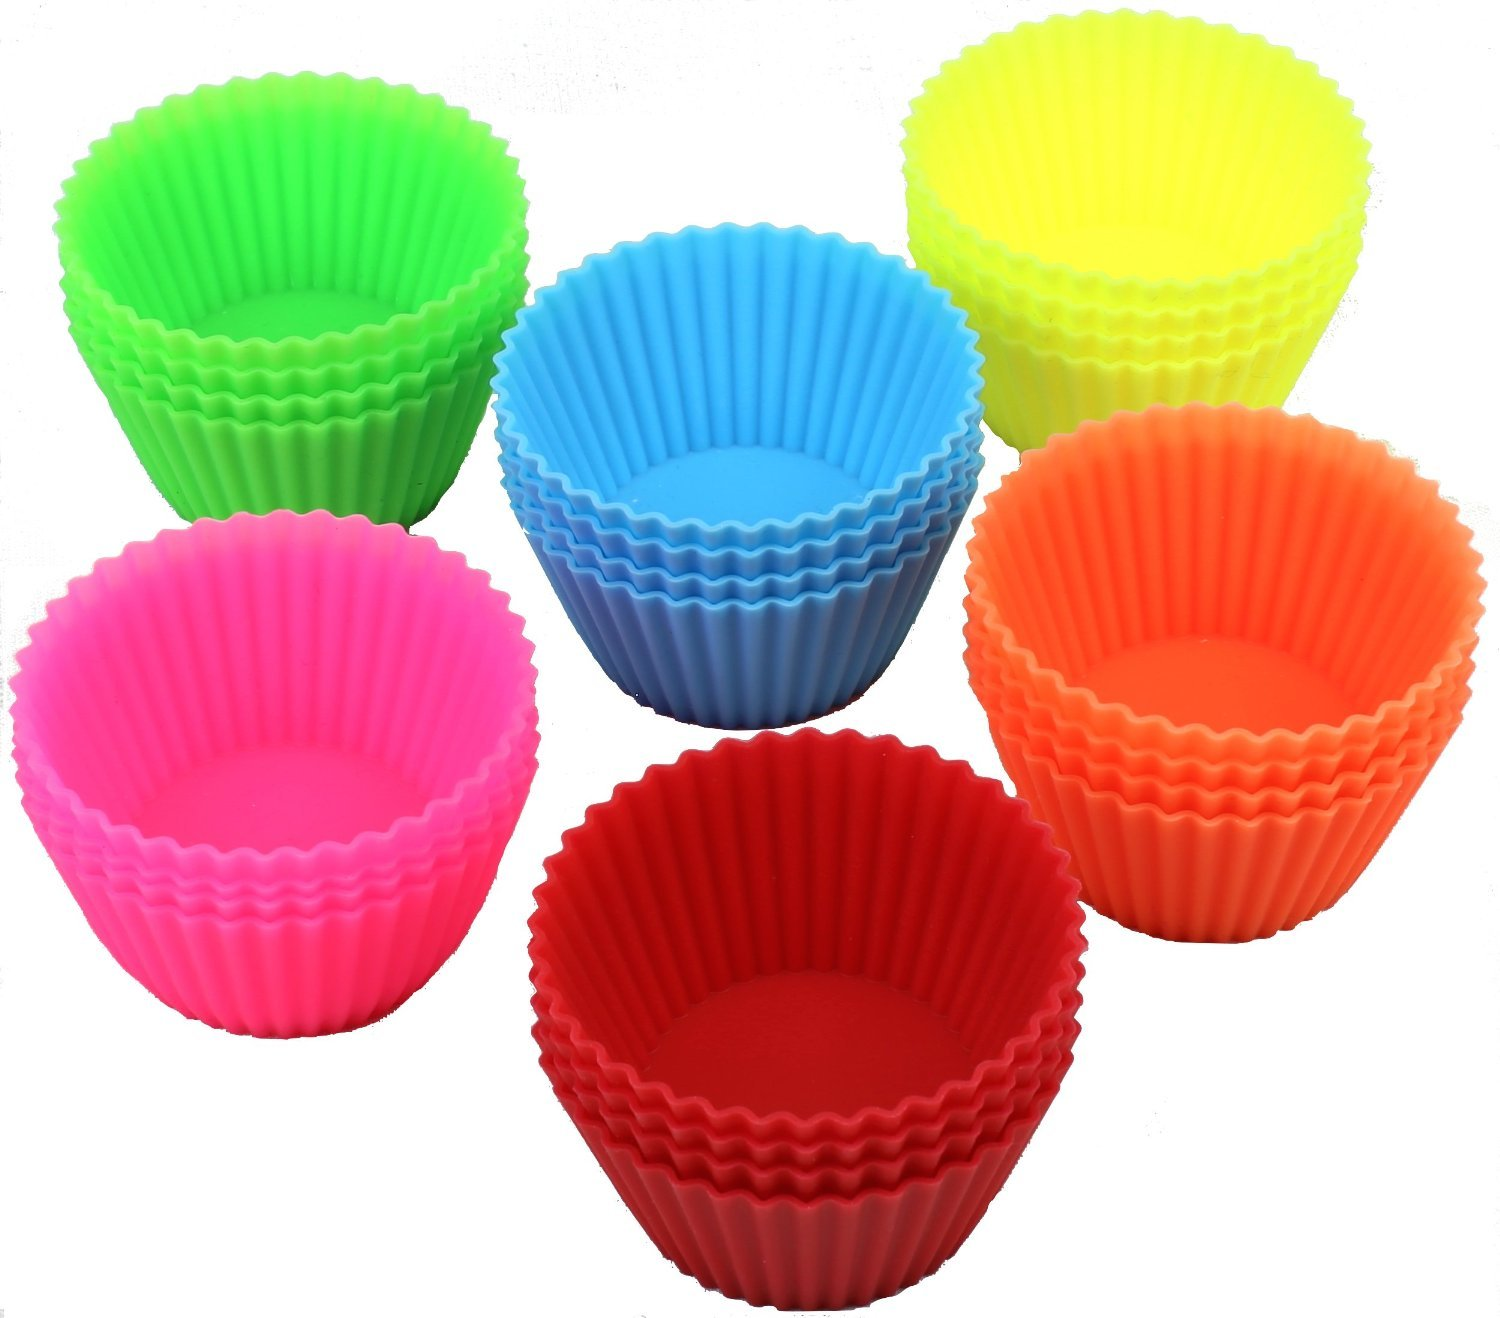 24 Pack - DecoBros Silicone Baking Muffin Cup Cupcake Liners Molds Set